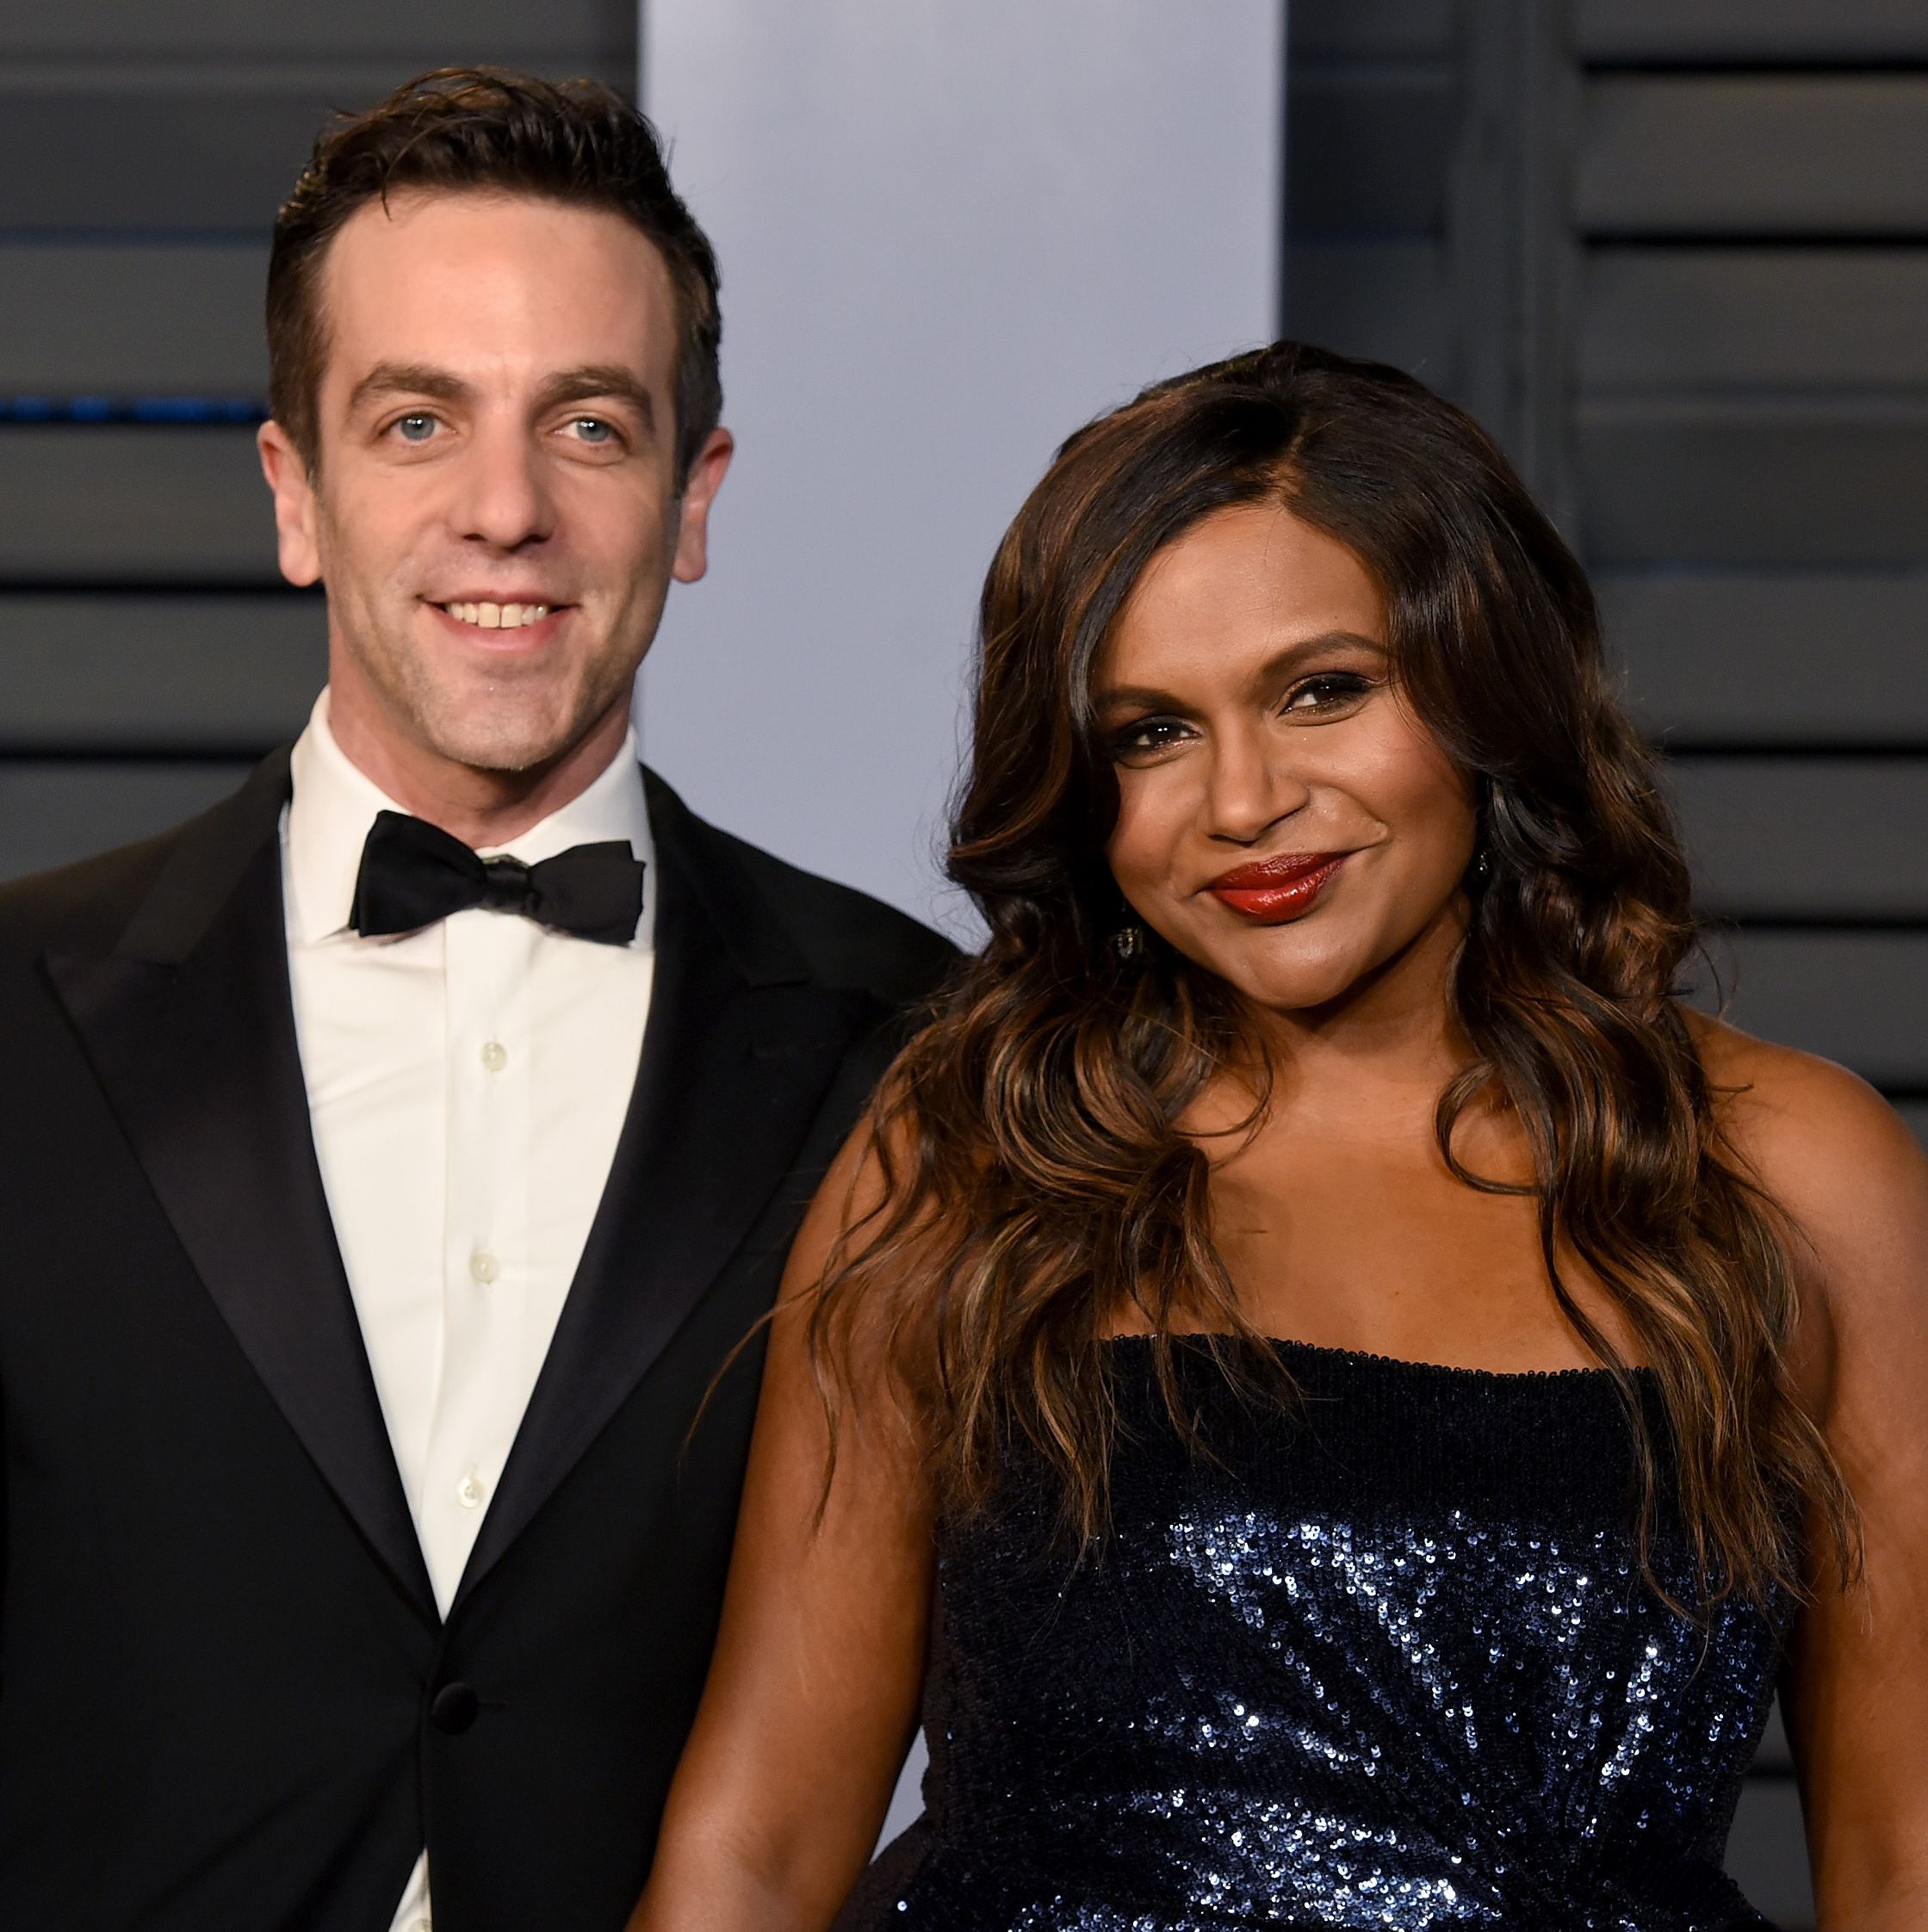 Mindy Kaling Reveals She's So Close With B.J. Novak, He's Her Daughter's Godfather